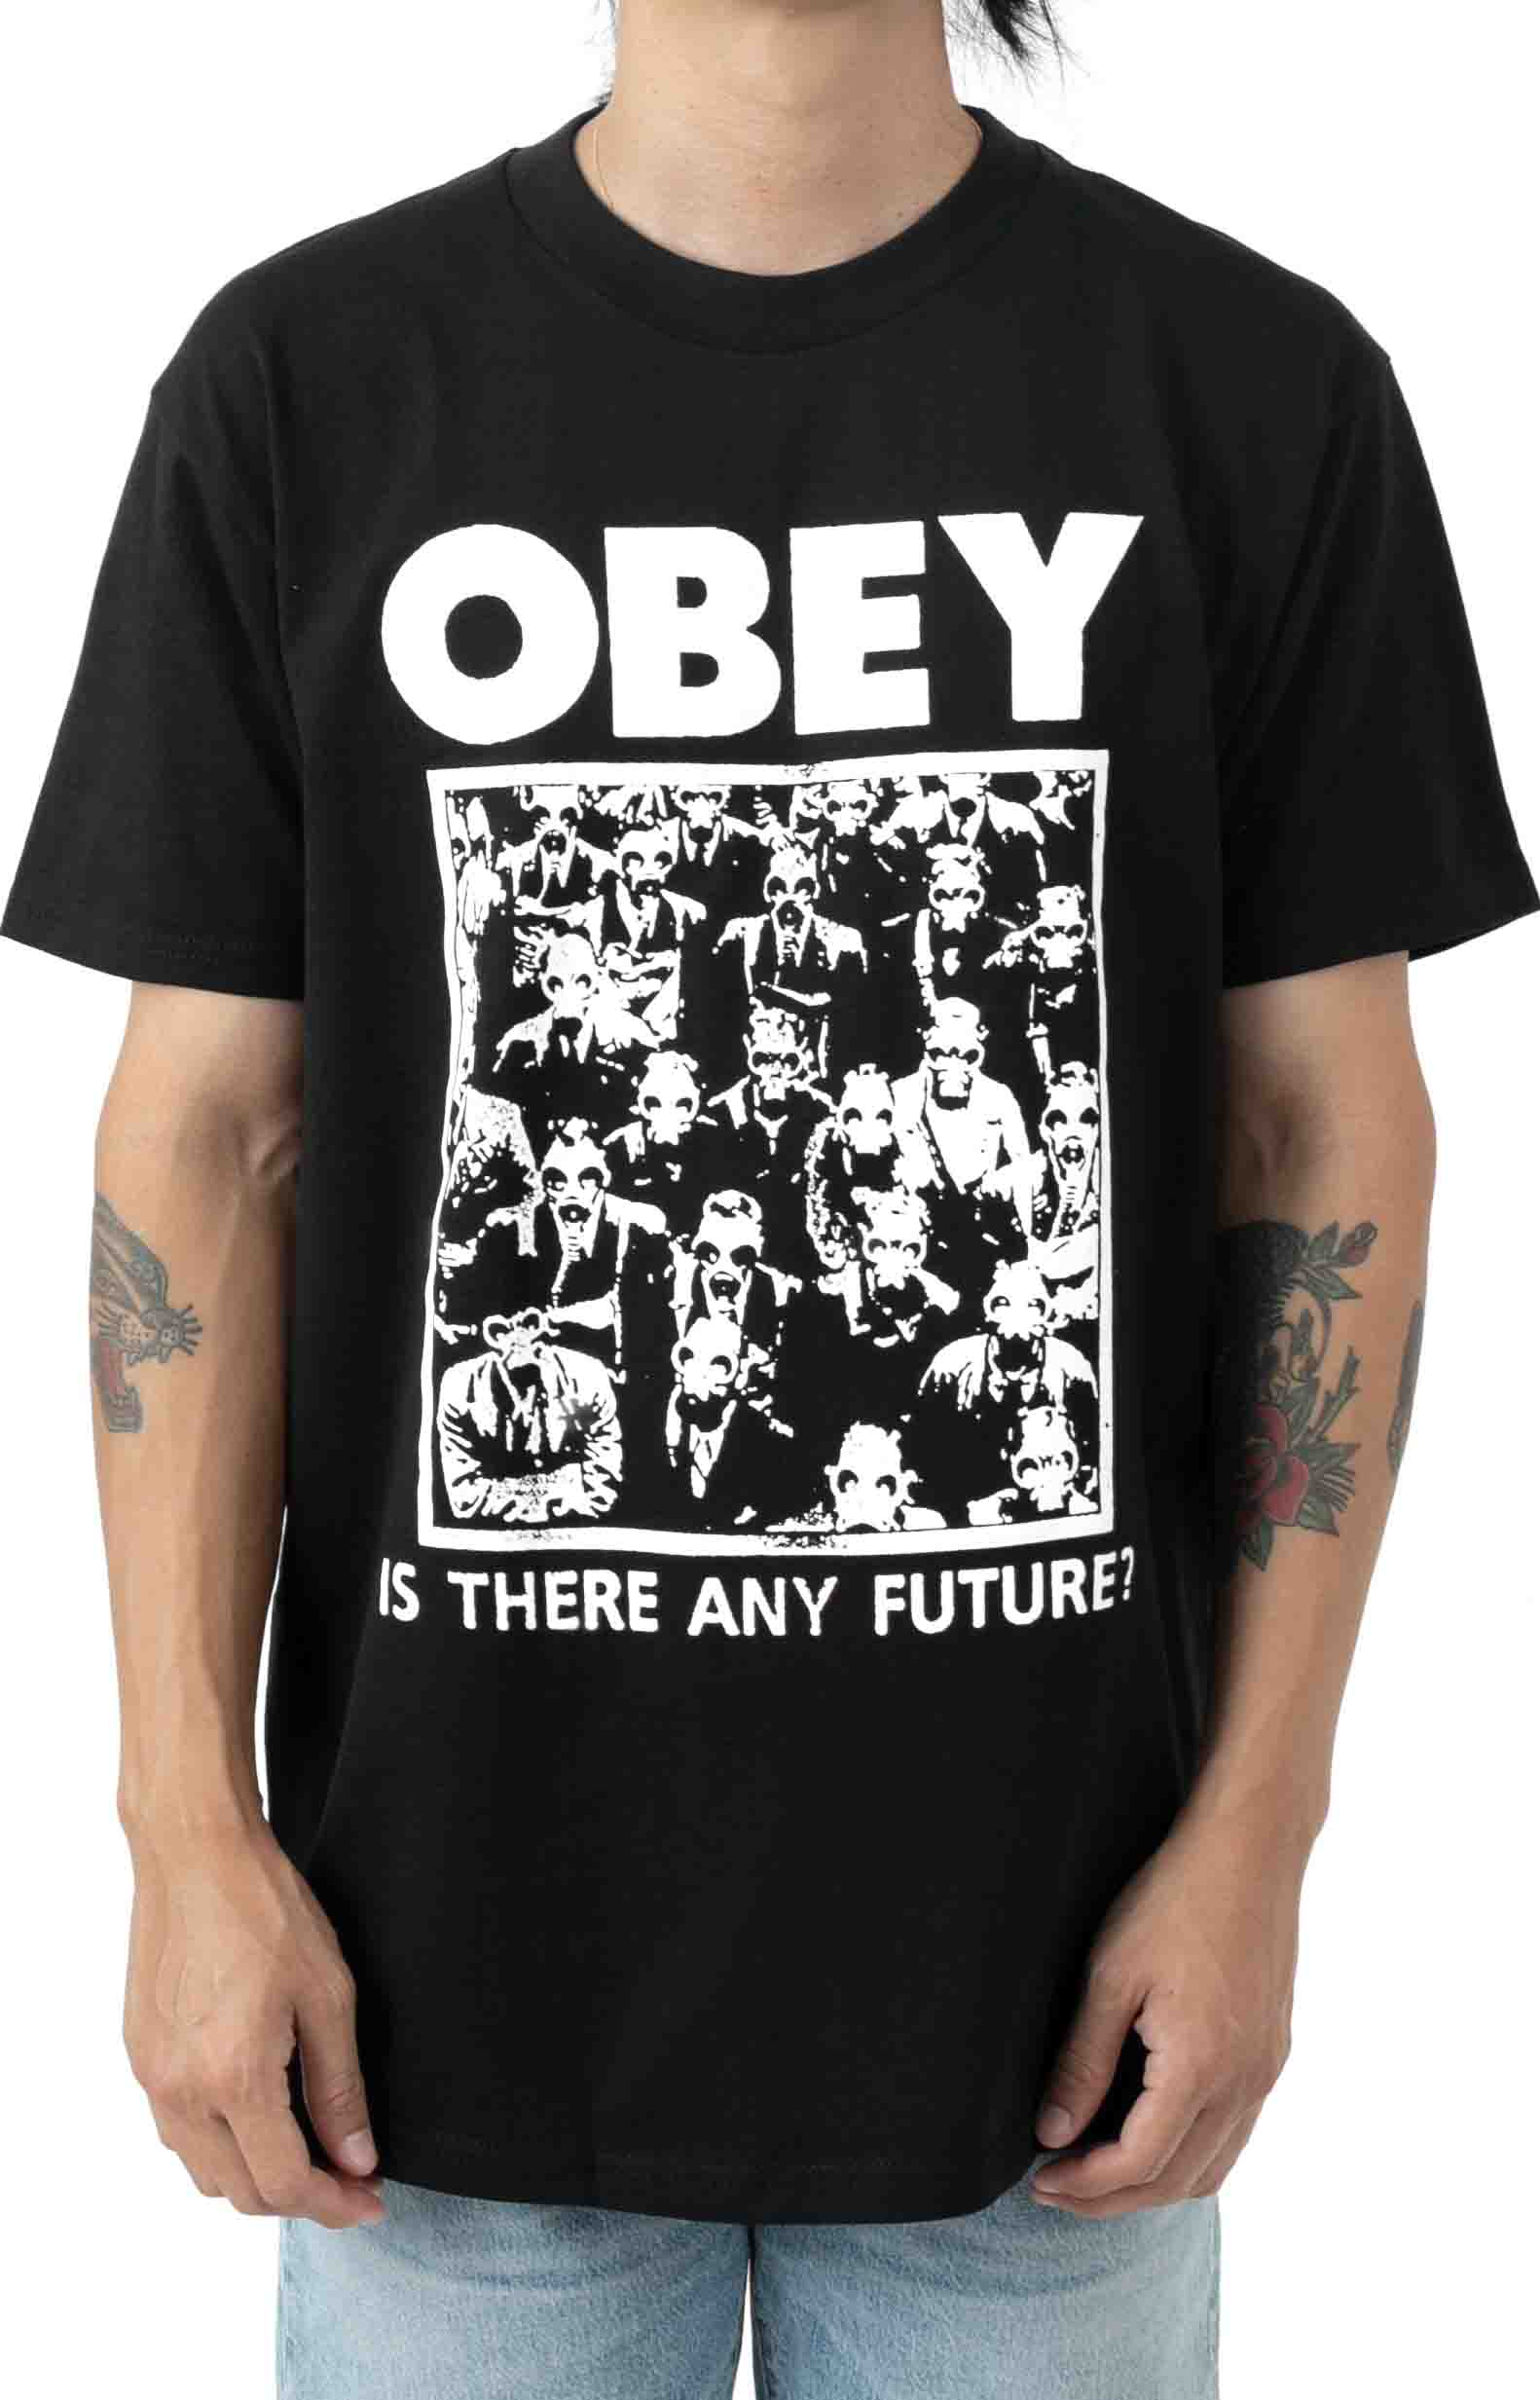 Is there Any Future T-Shirt - Black